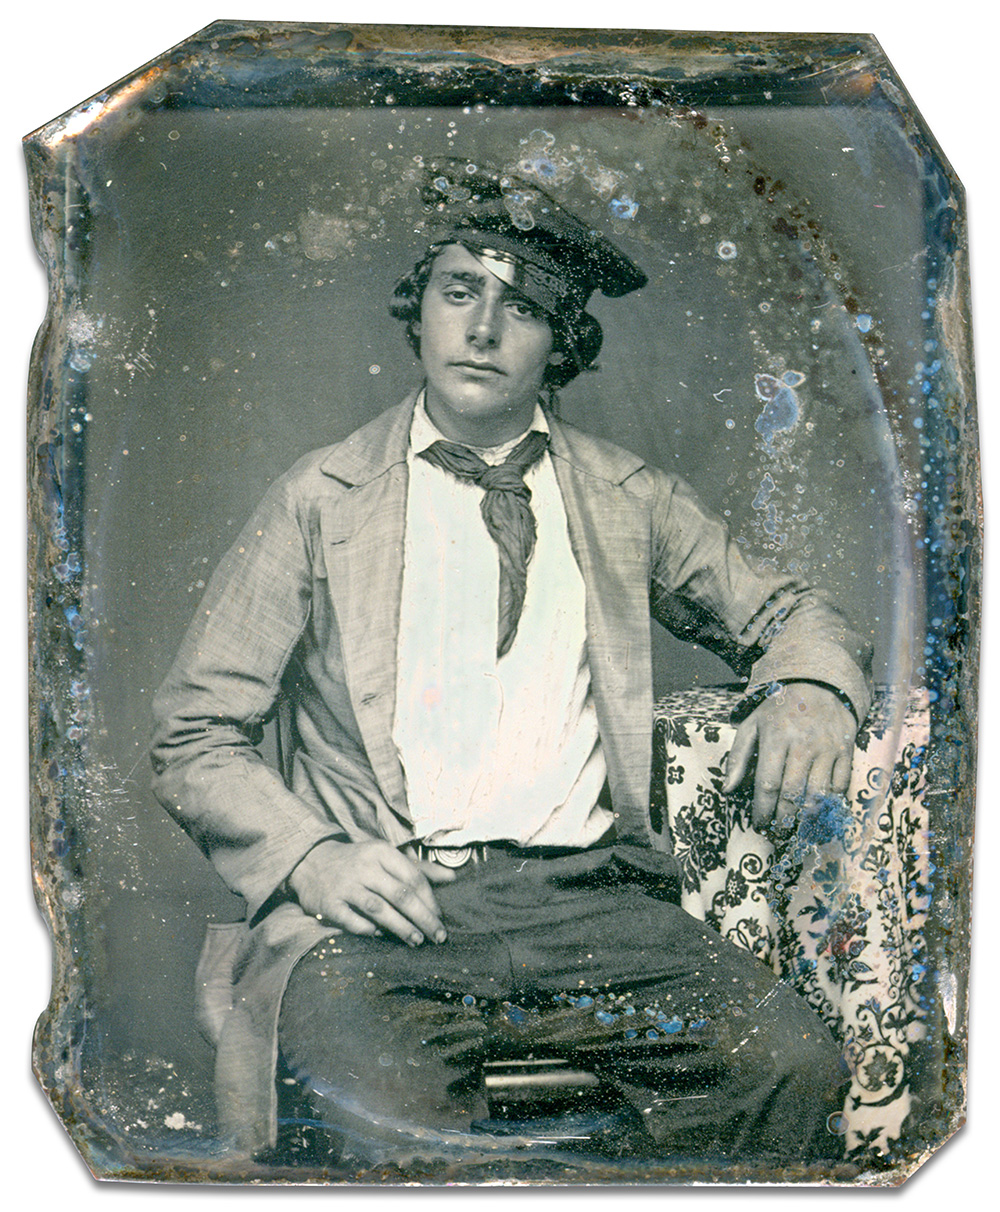 Ninth-plate daguerreotype by an anonymous photographer. Ron Field collection.